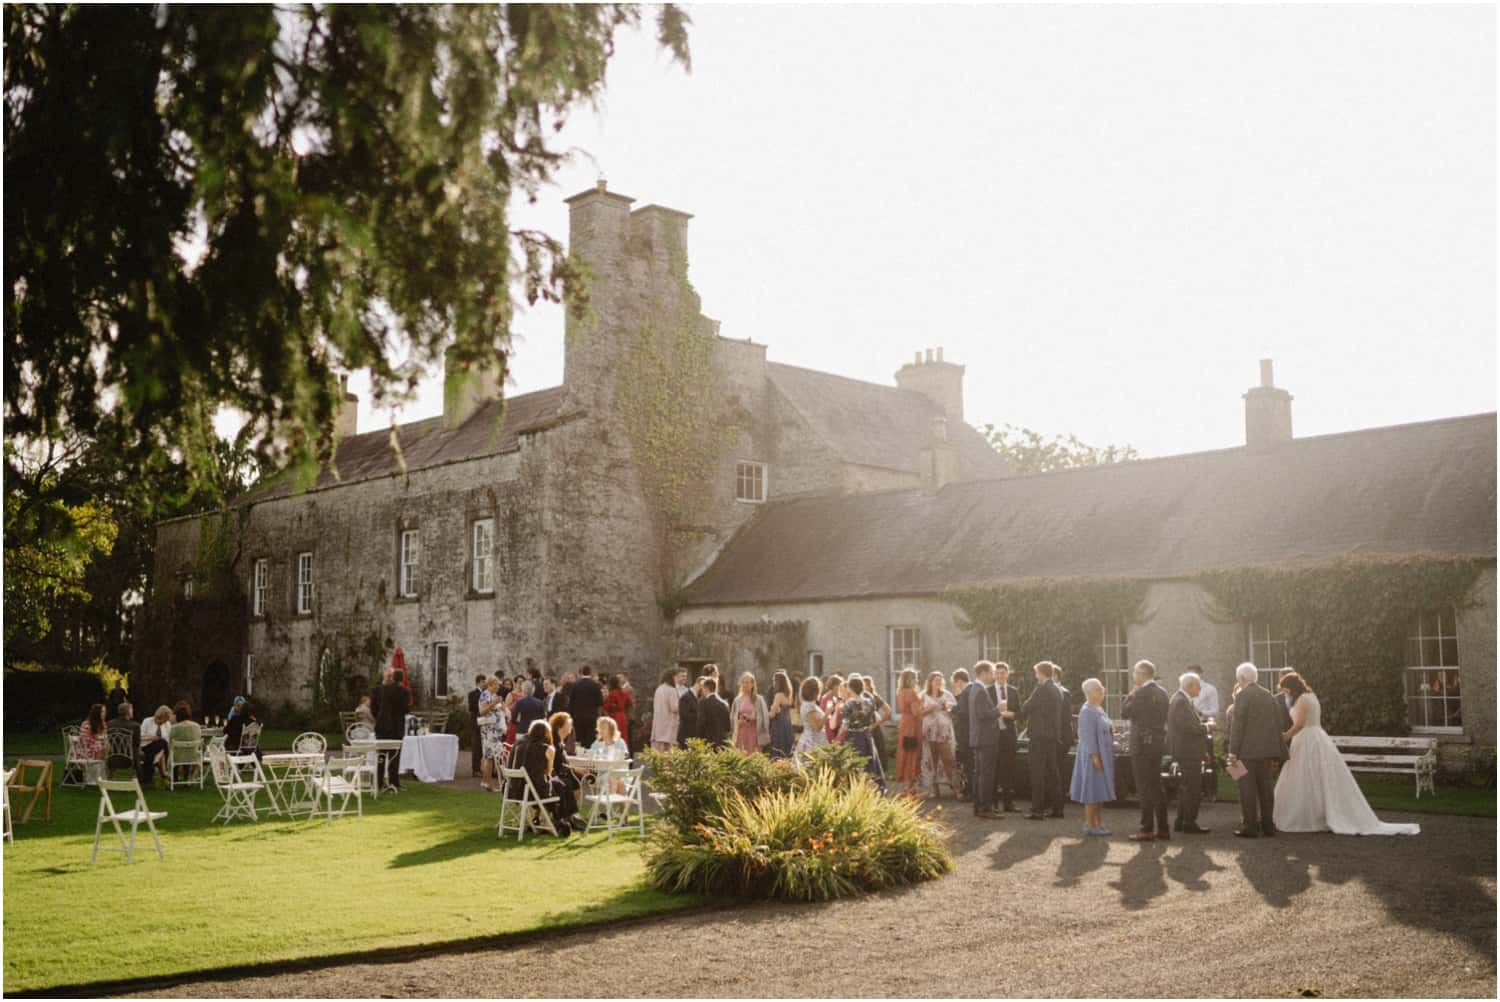 Guests mingle at a Durhamstown Castle wedding